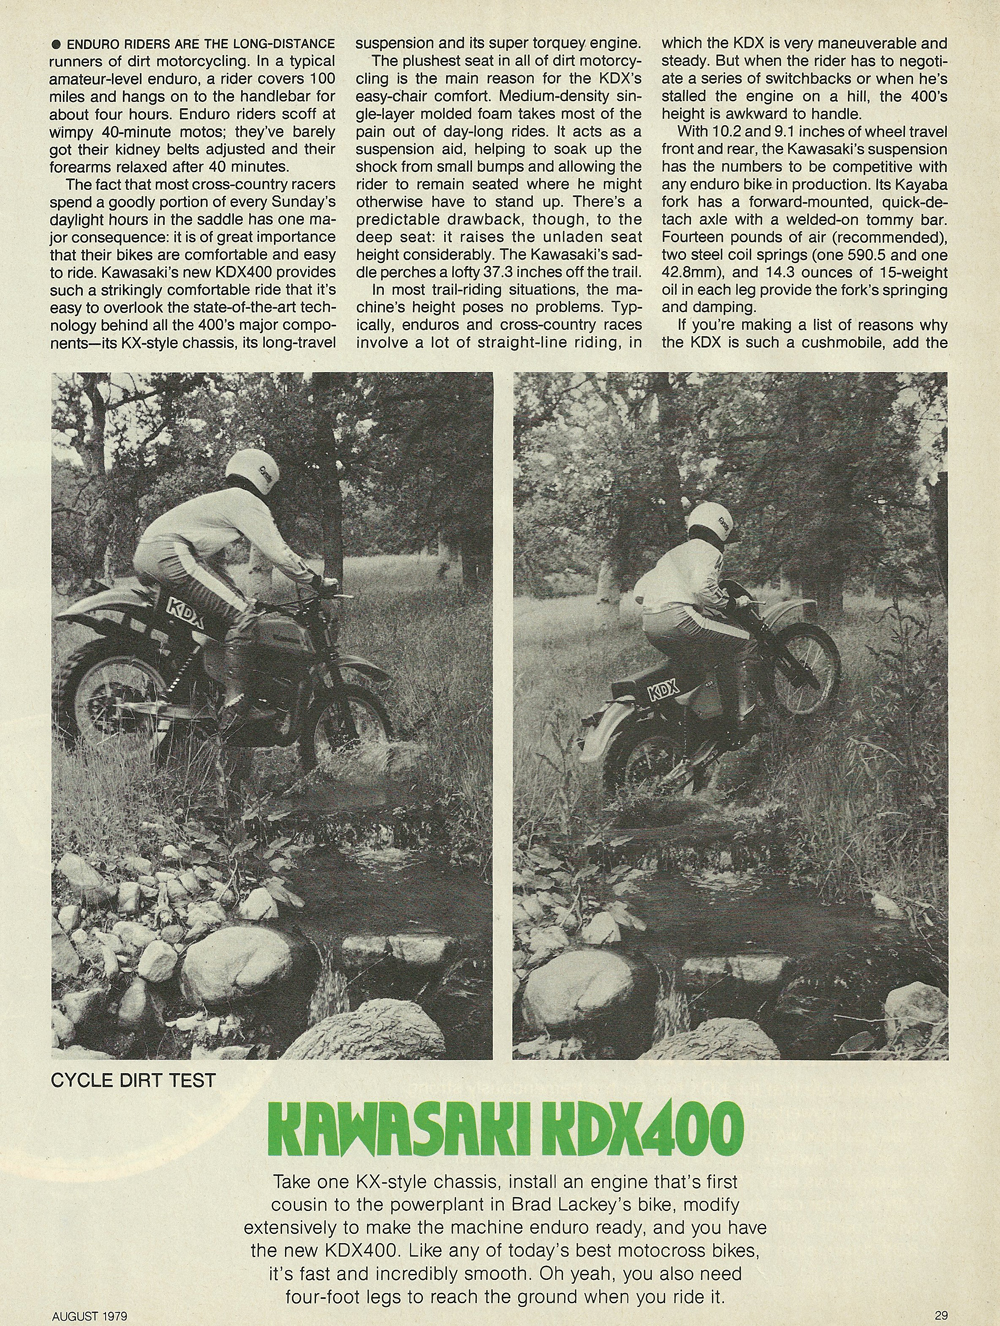 1979 Kawasaki KDX400 off road test 2.jpg